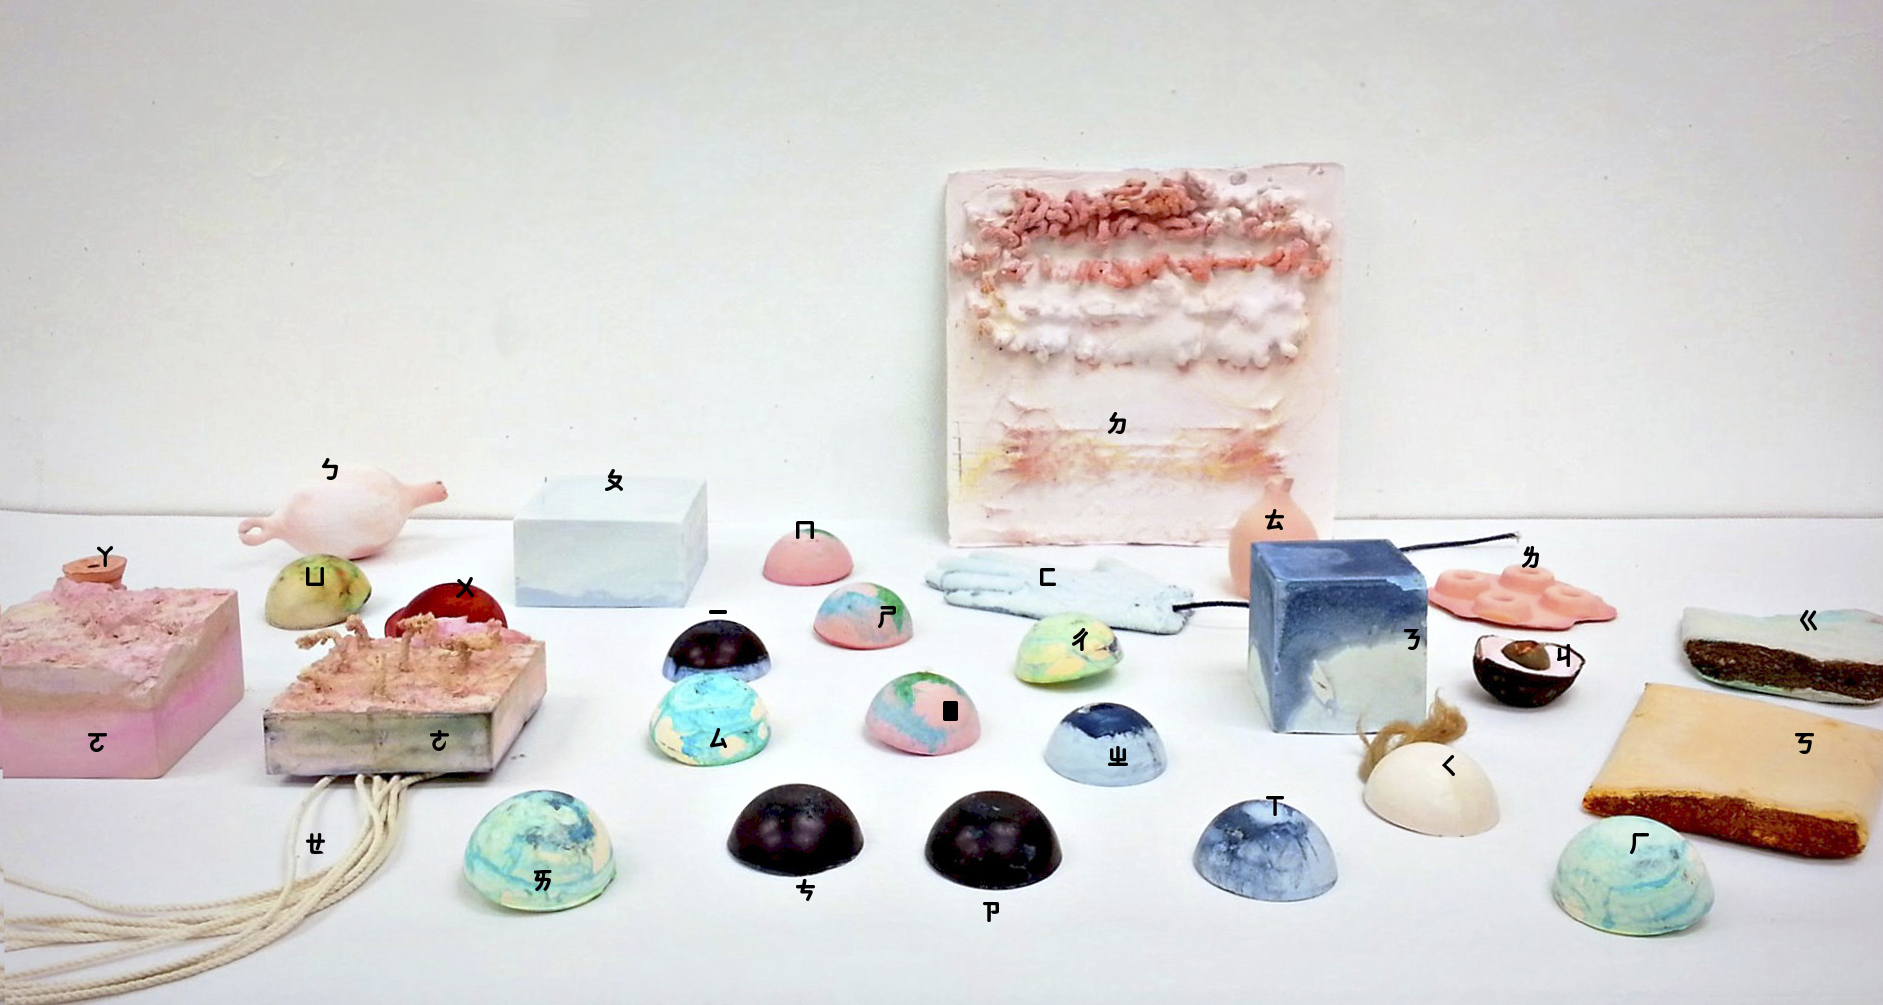 Cathy Hsiao,  Bopomofo Score Key  (Songbook for Sculpture), studio view, Concrete, recycled textile dyes, Dimensions variable, 2017